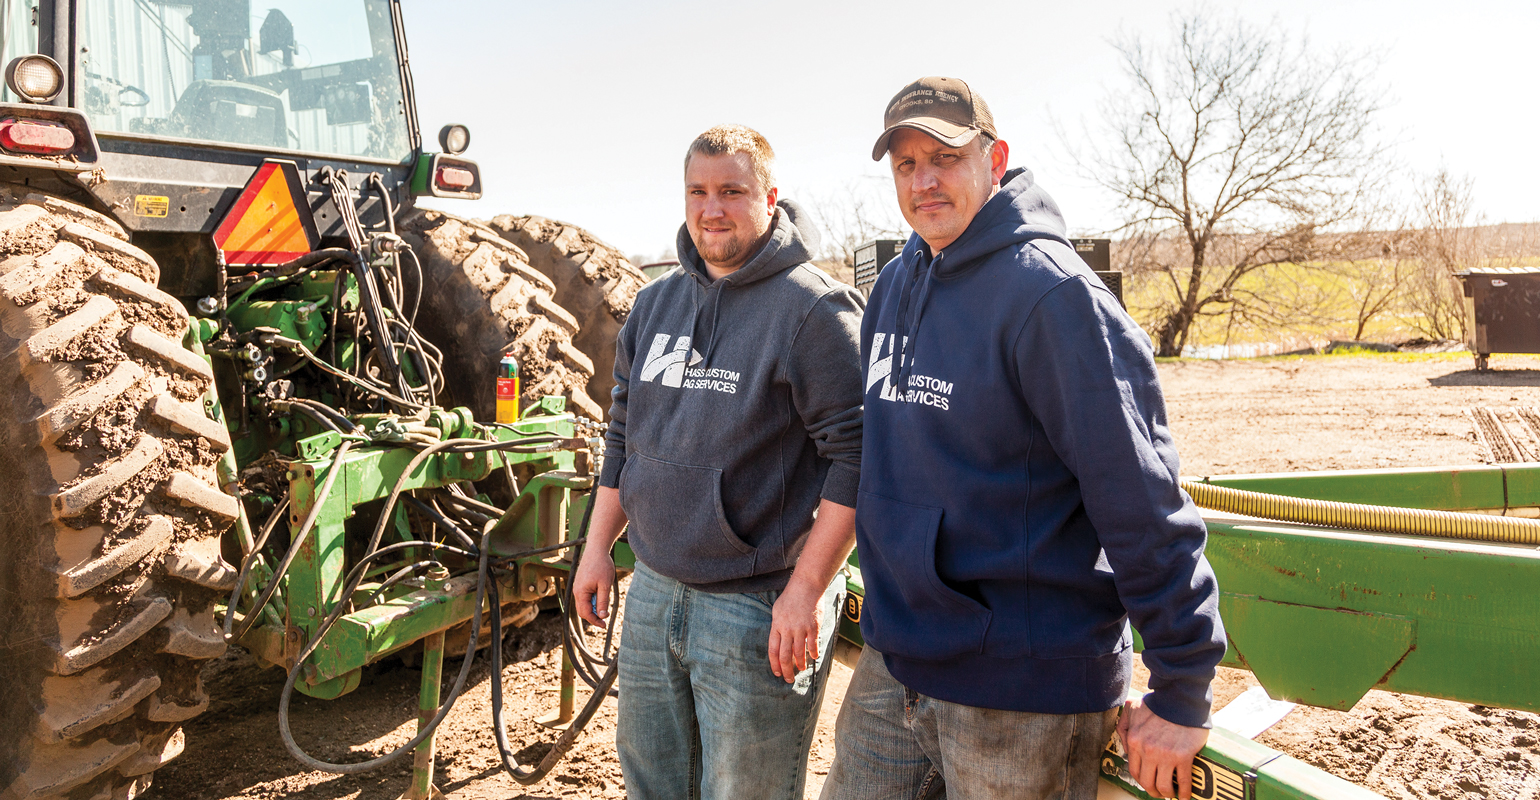 Two men standing between a John Deere rear tractor tire and implement.